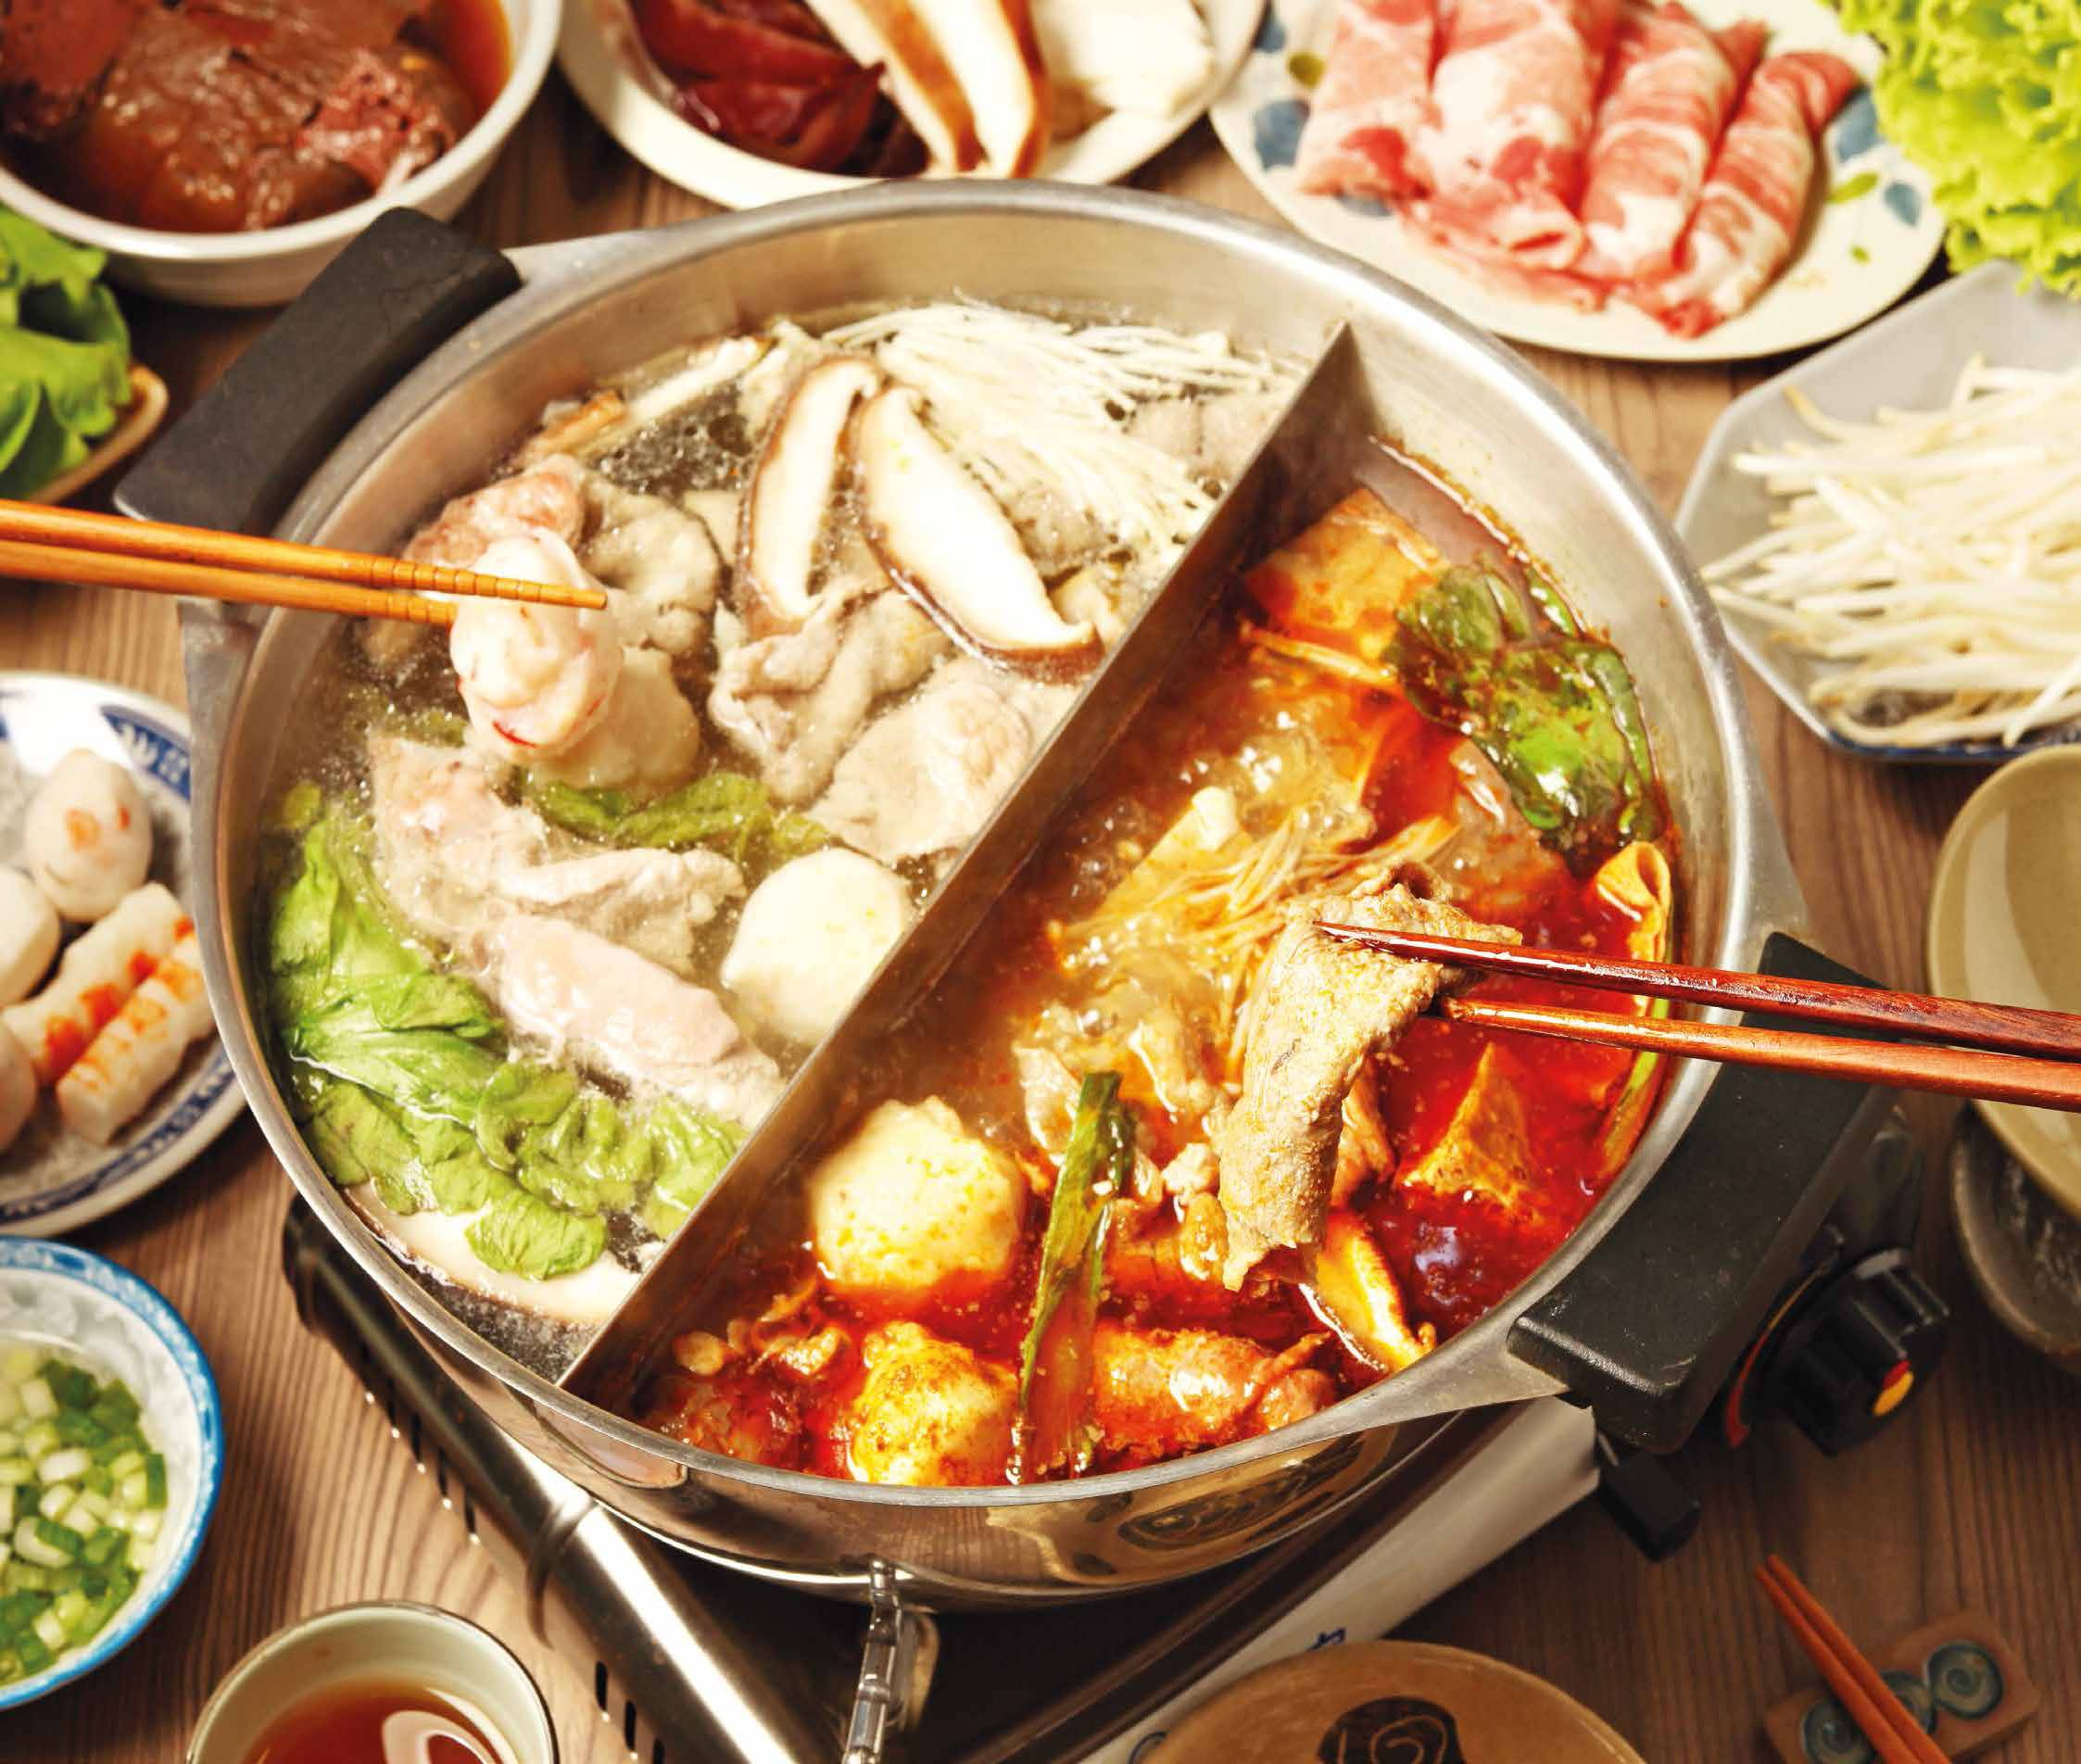 HOW MANY CALORIES ARE IN YOUR HOT POT?